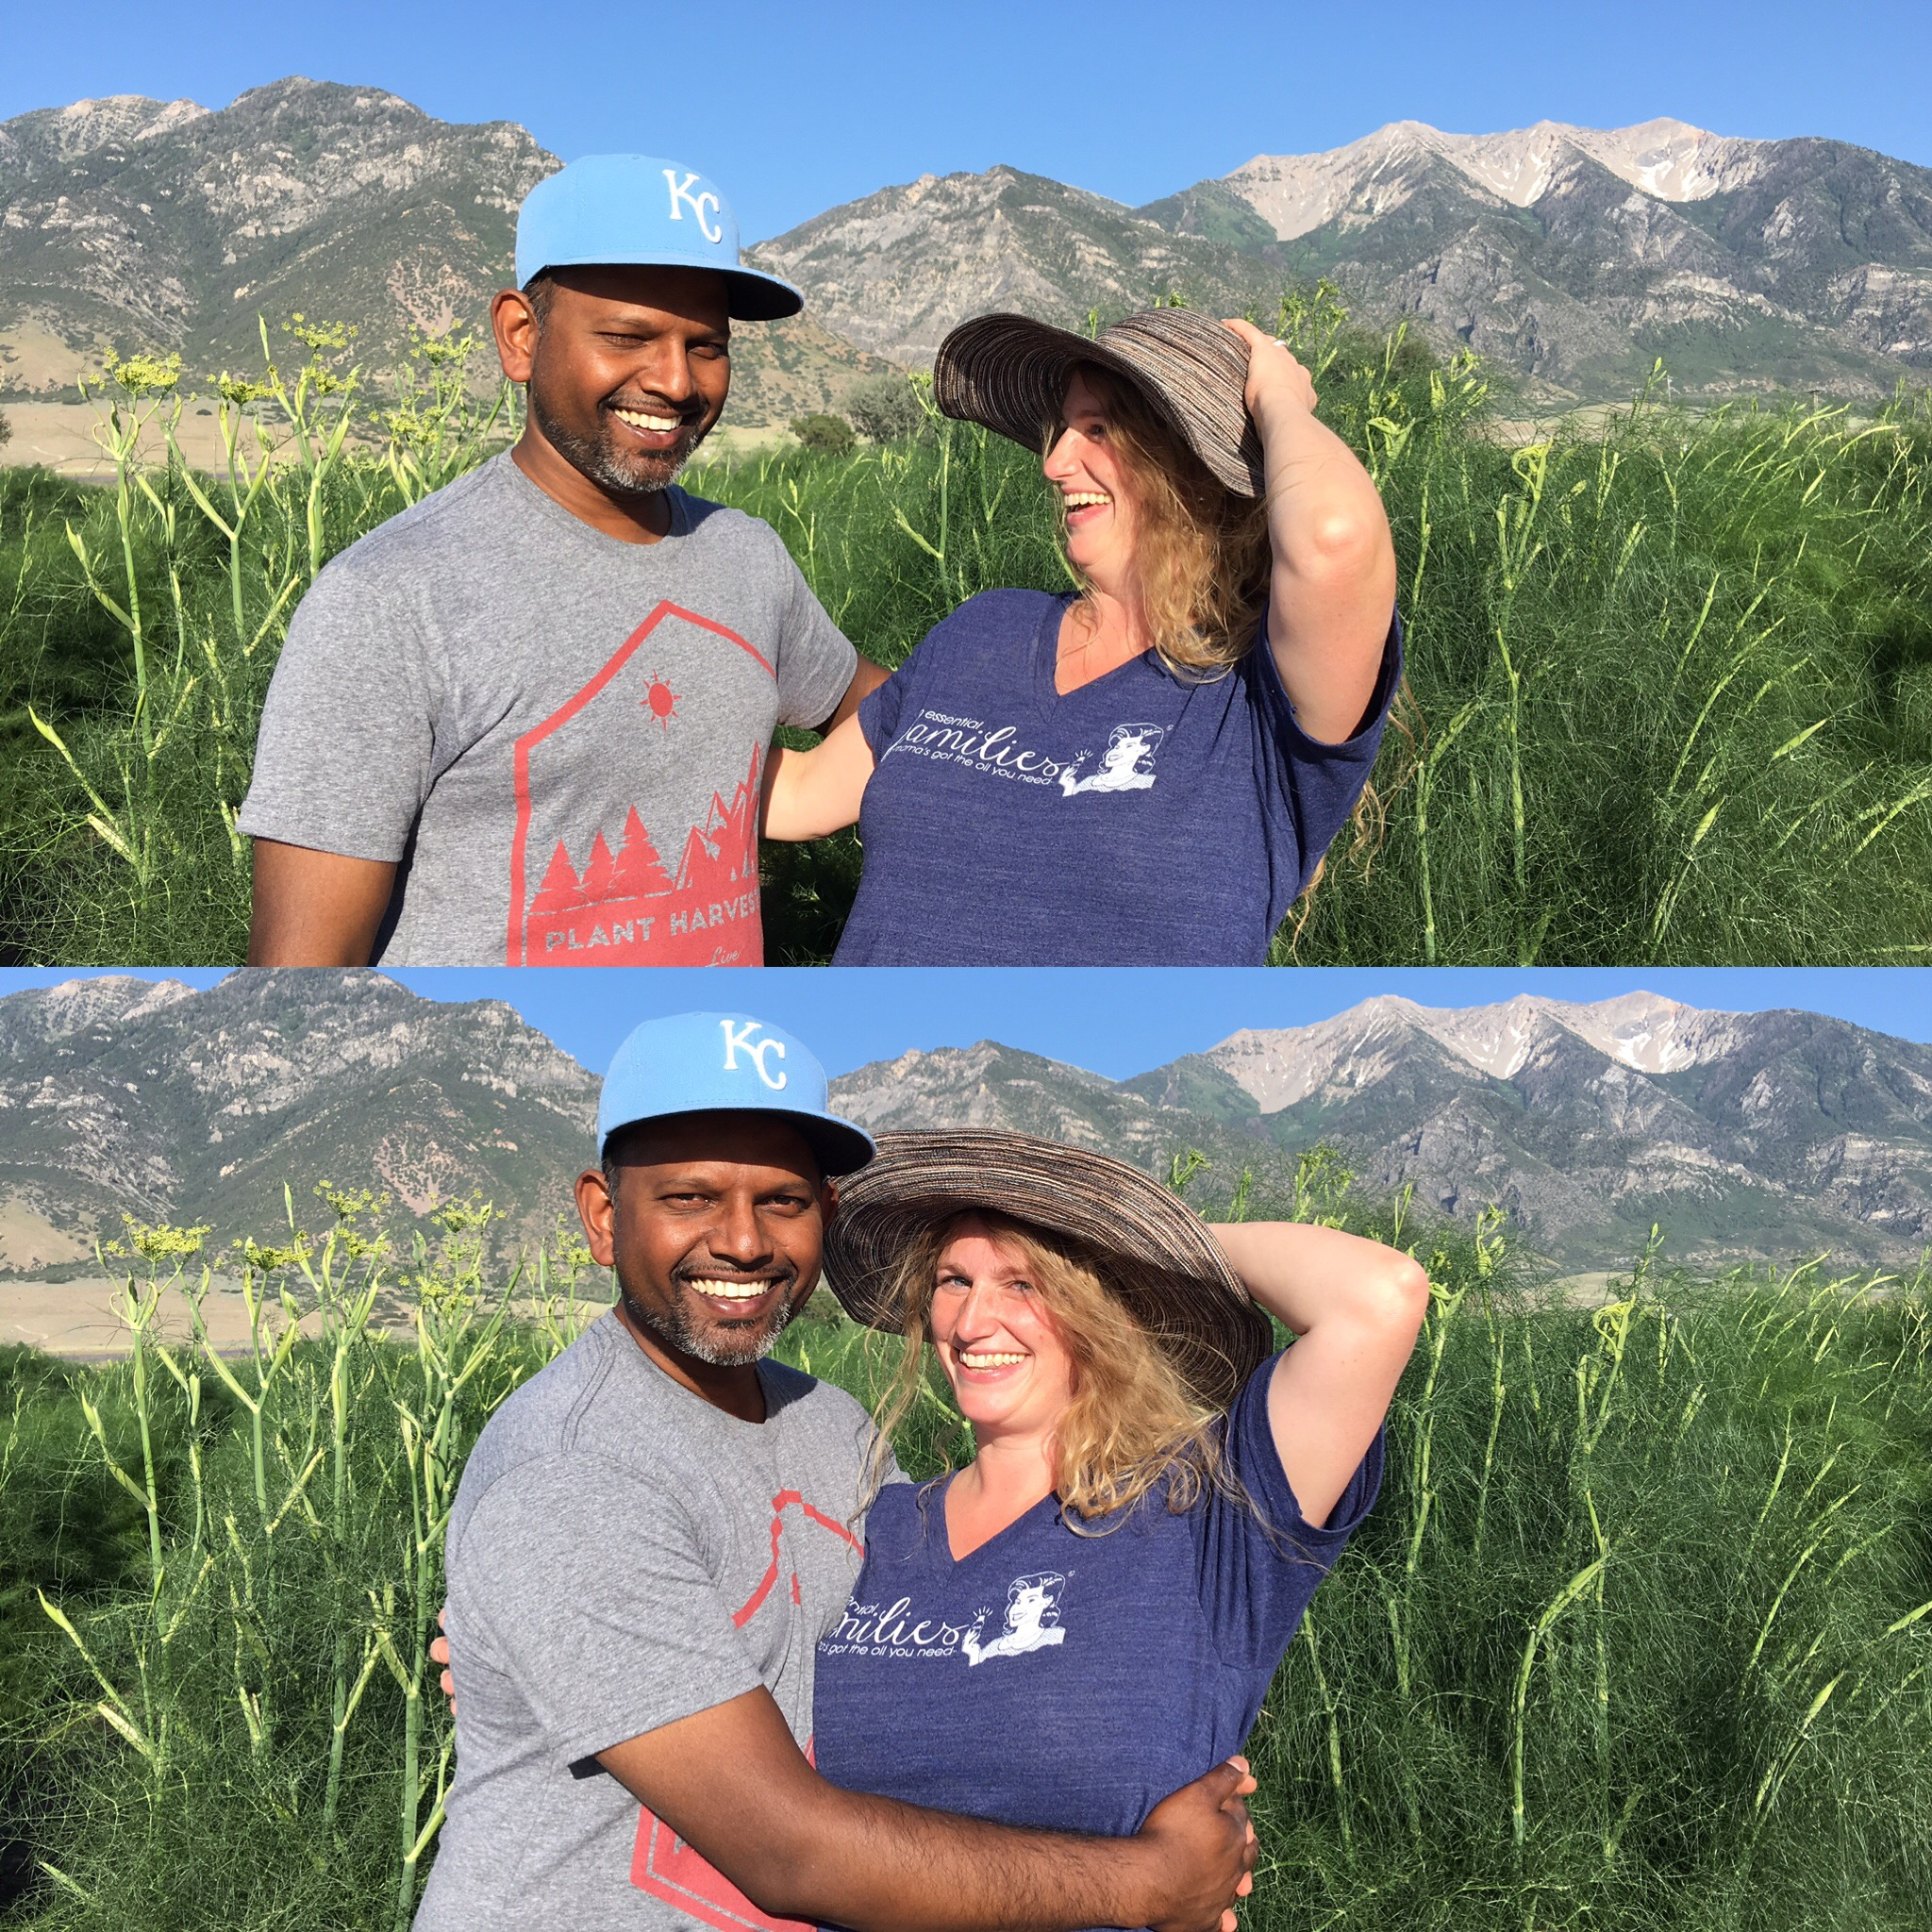 Visiting a Young Living fennel field in Utah